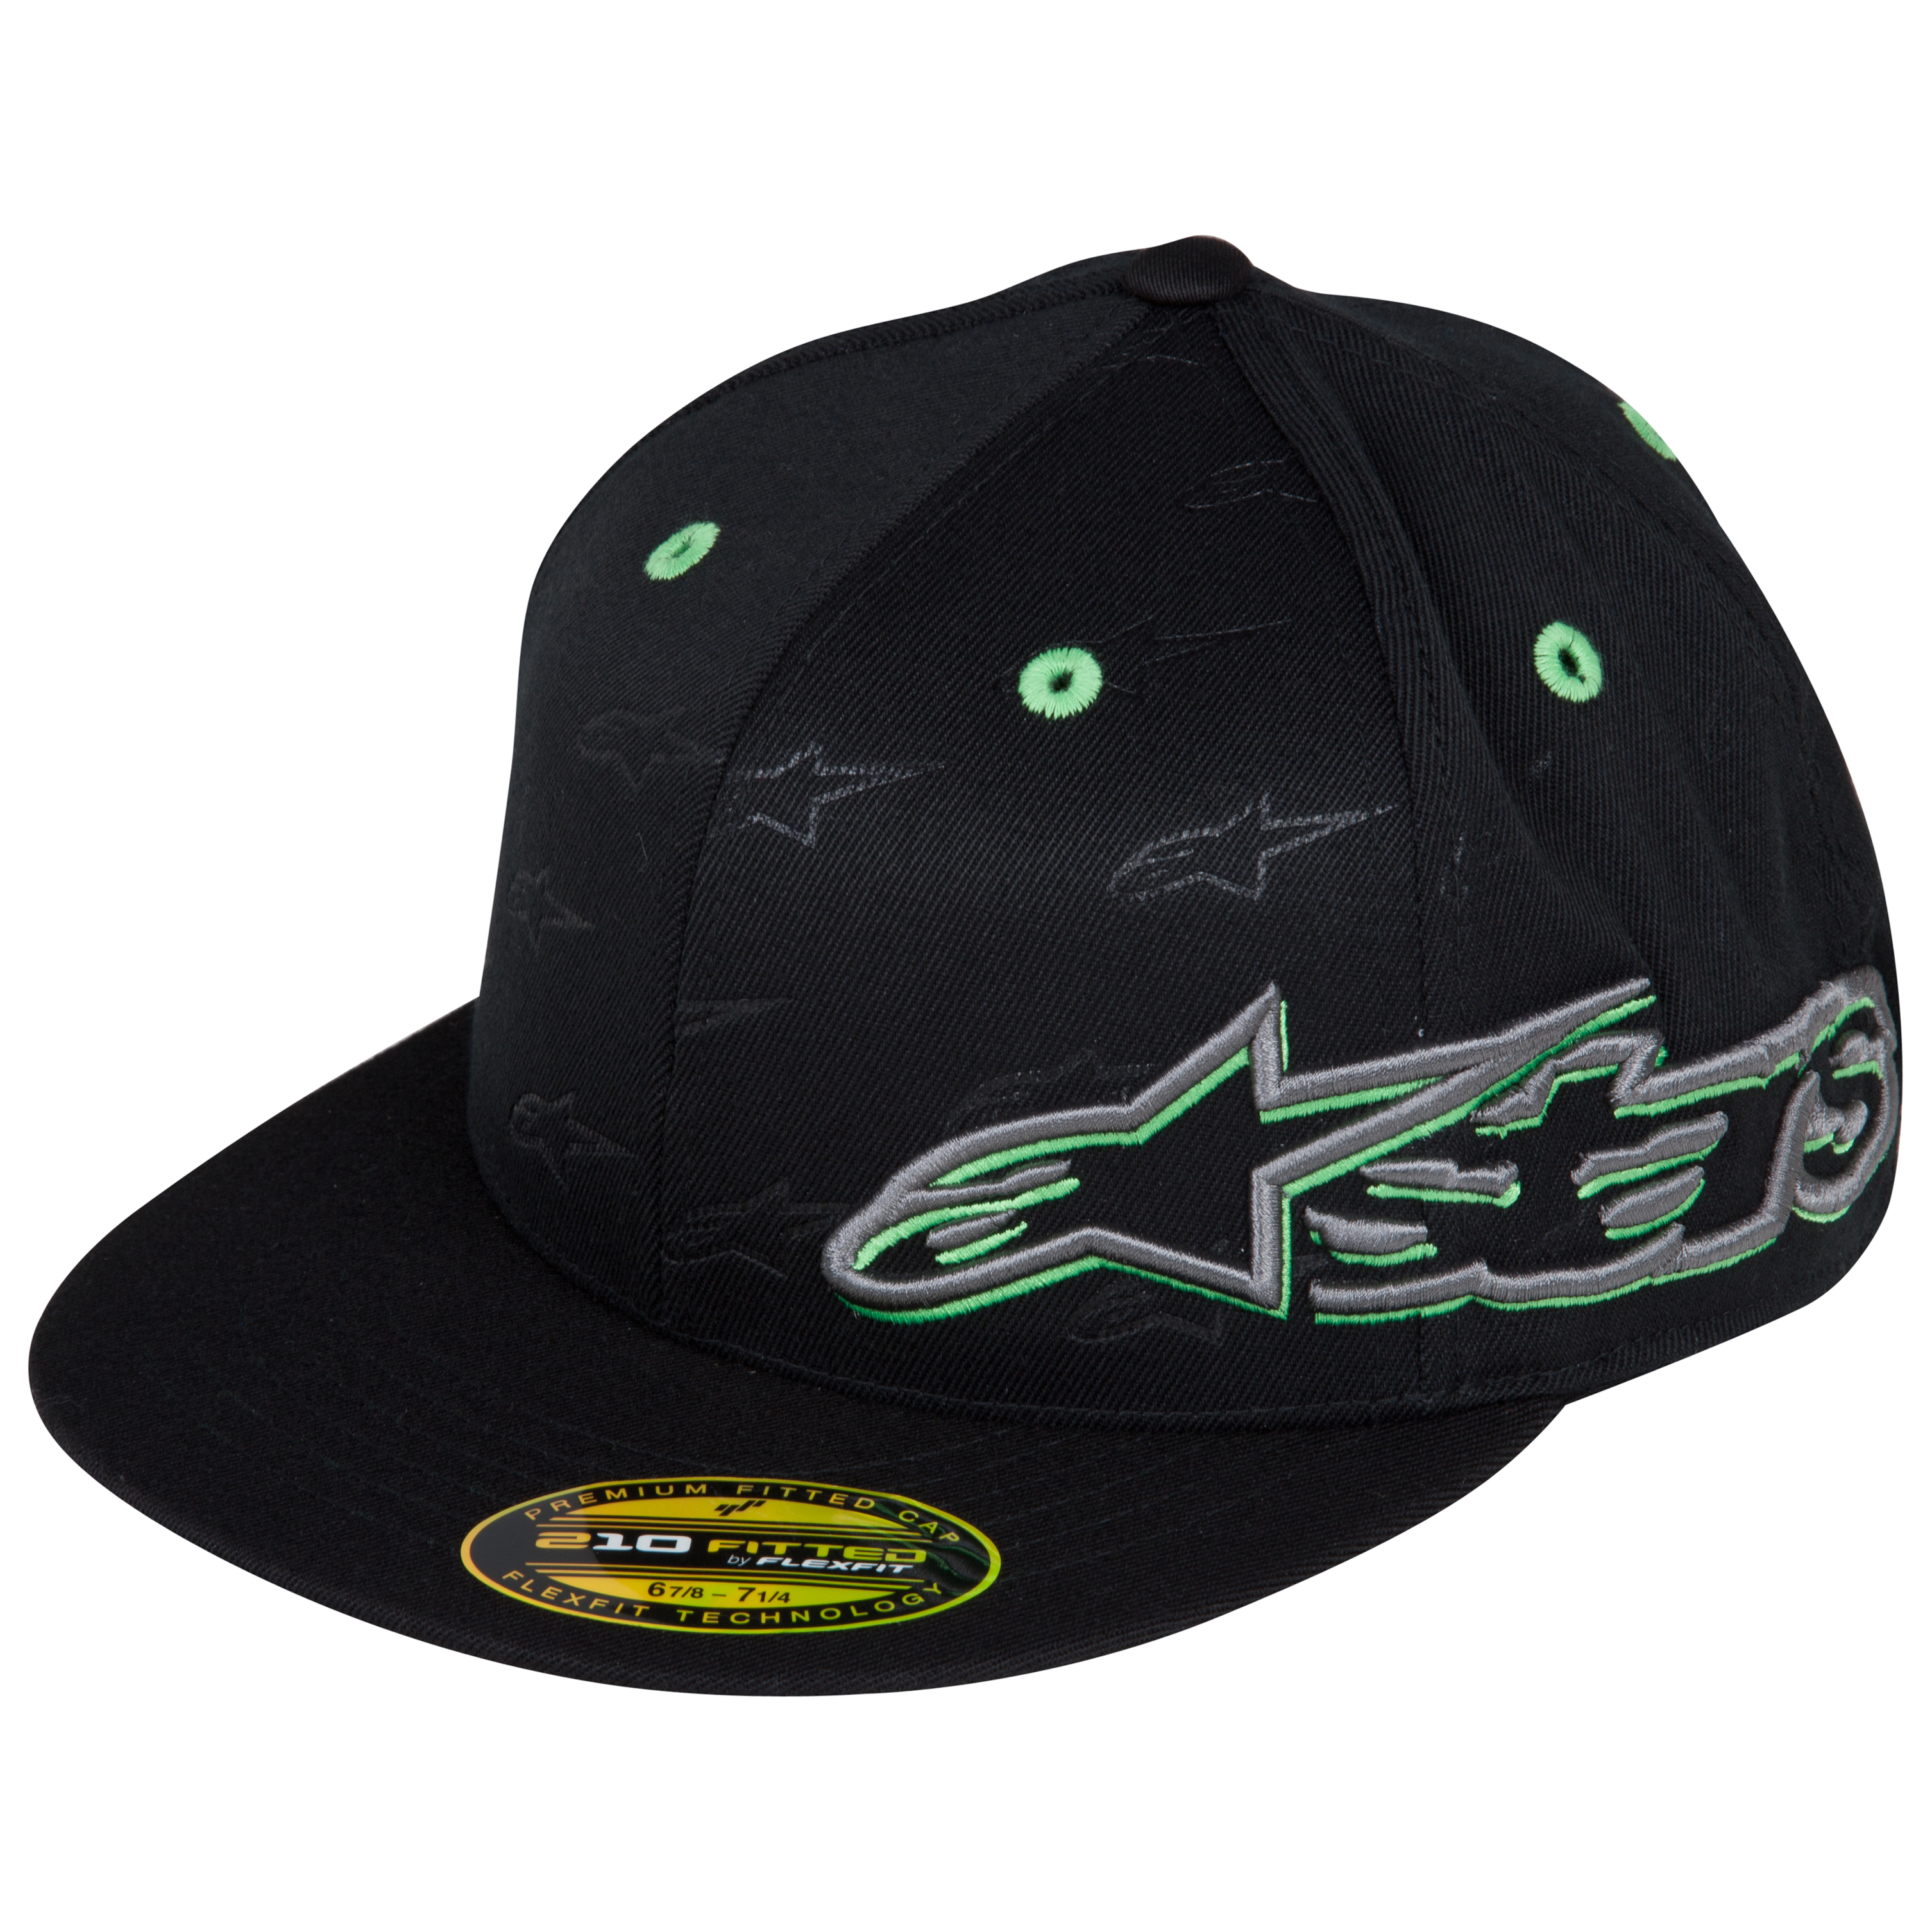 Alpinestar Alpinestars All Heat 210 Hat - Black